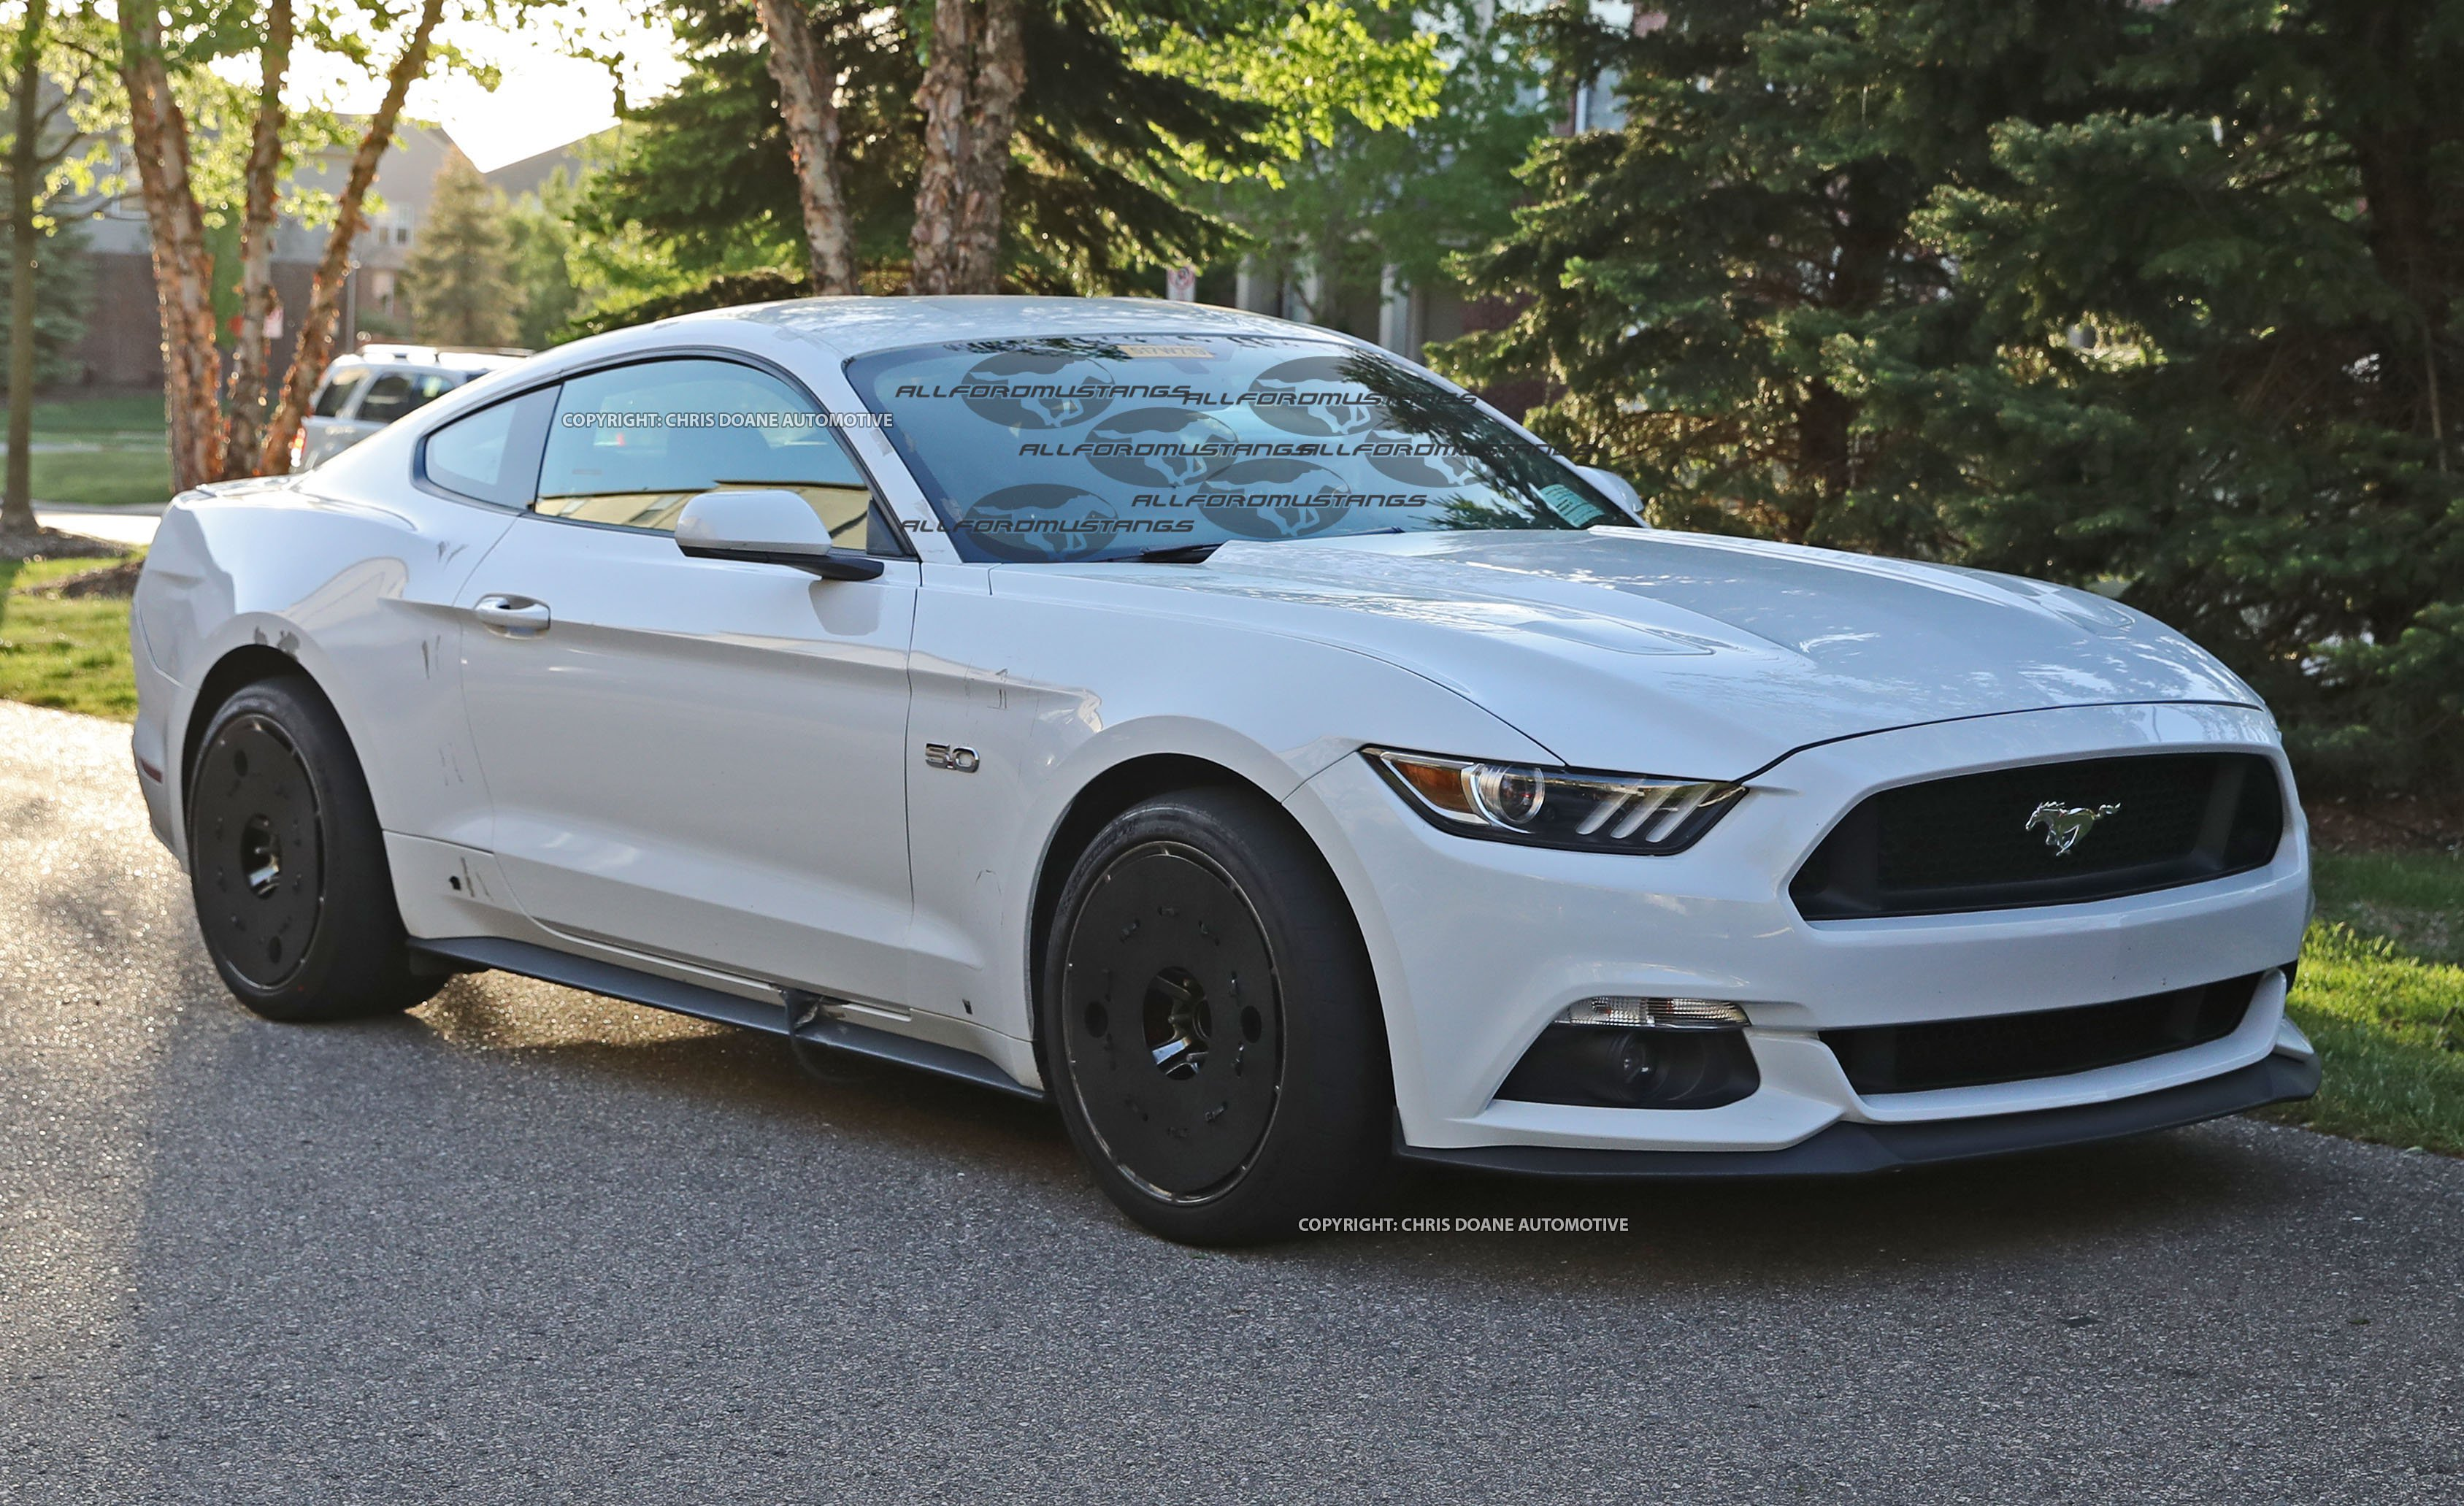 30 A 2019 Mustang Mach Price Design and Review